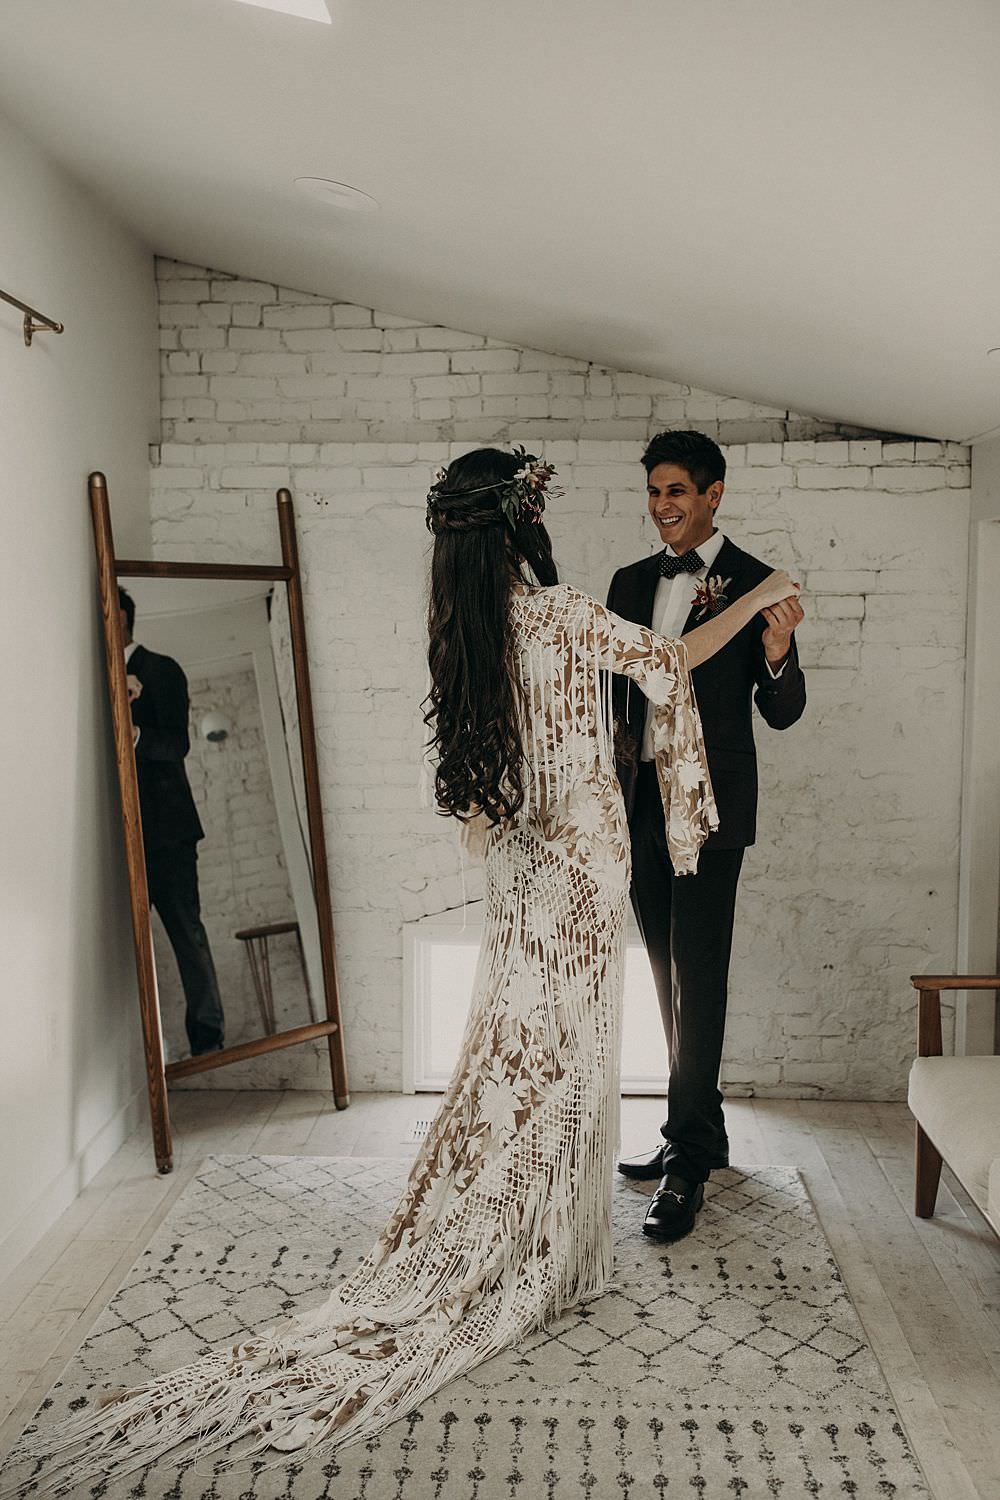 First look between bride and groom. Bride in a white bohemian dress and floral crown faces groom in a black tuxedo with a large smile on his face. Photograph by Austin, Texas wedding photographer Nikk Nguyen.